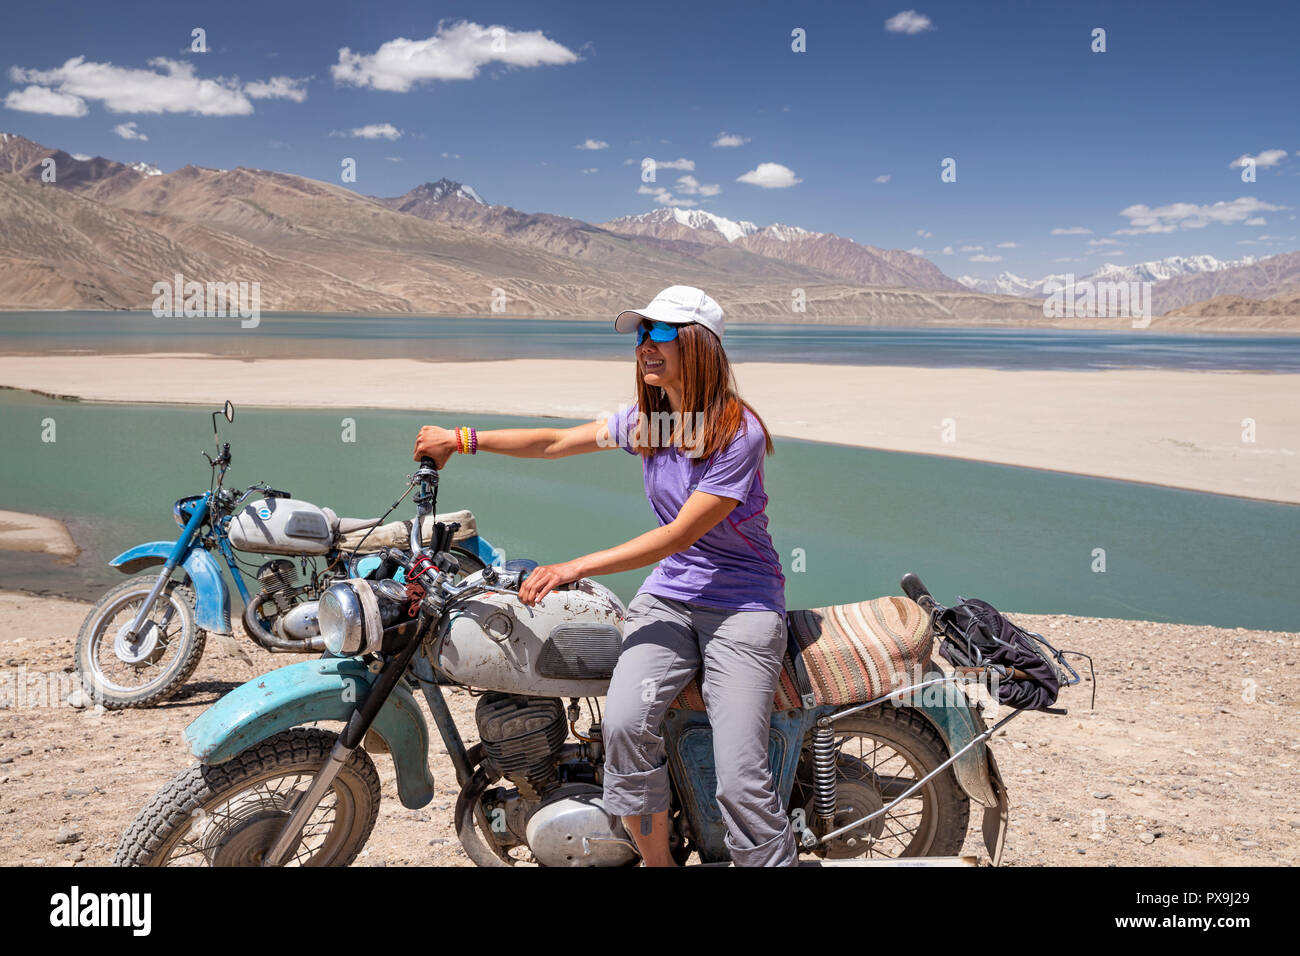 Checking out a couple of old Russian motorcycles parked at Yashikul Lake in the Upper Gunt Valley, Pamir Mountains, Tajikistan - Stock Image